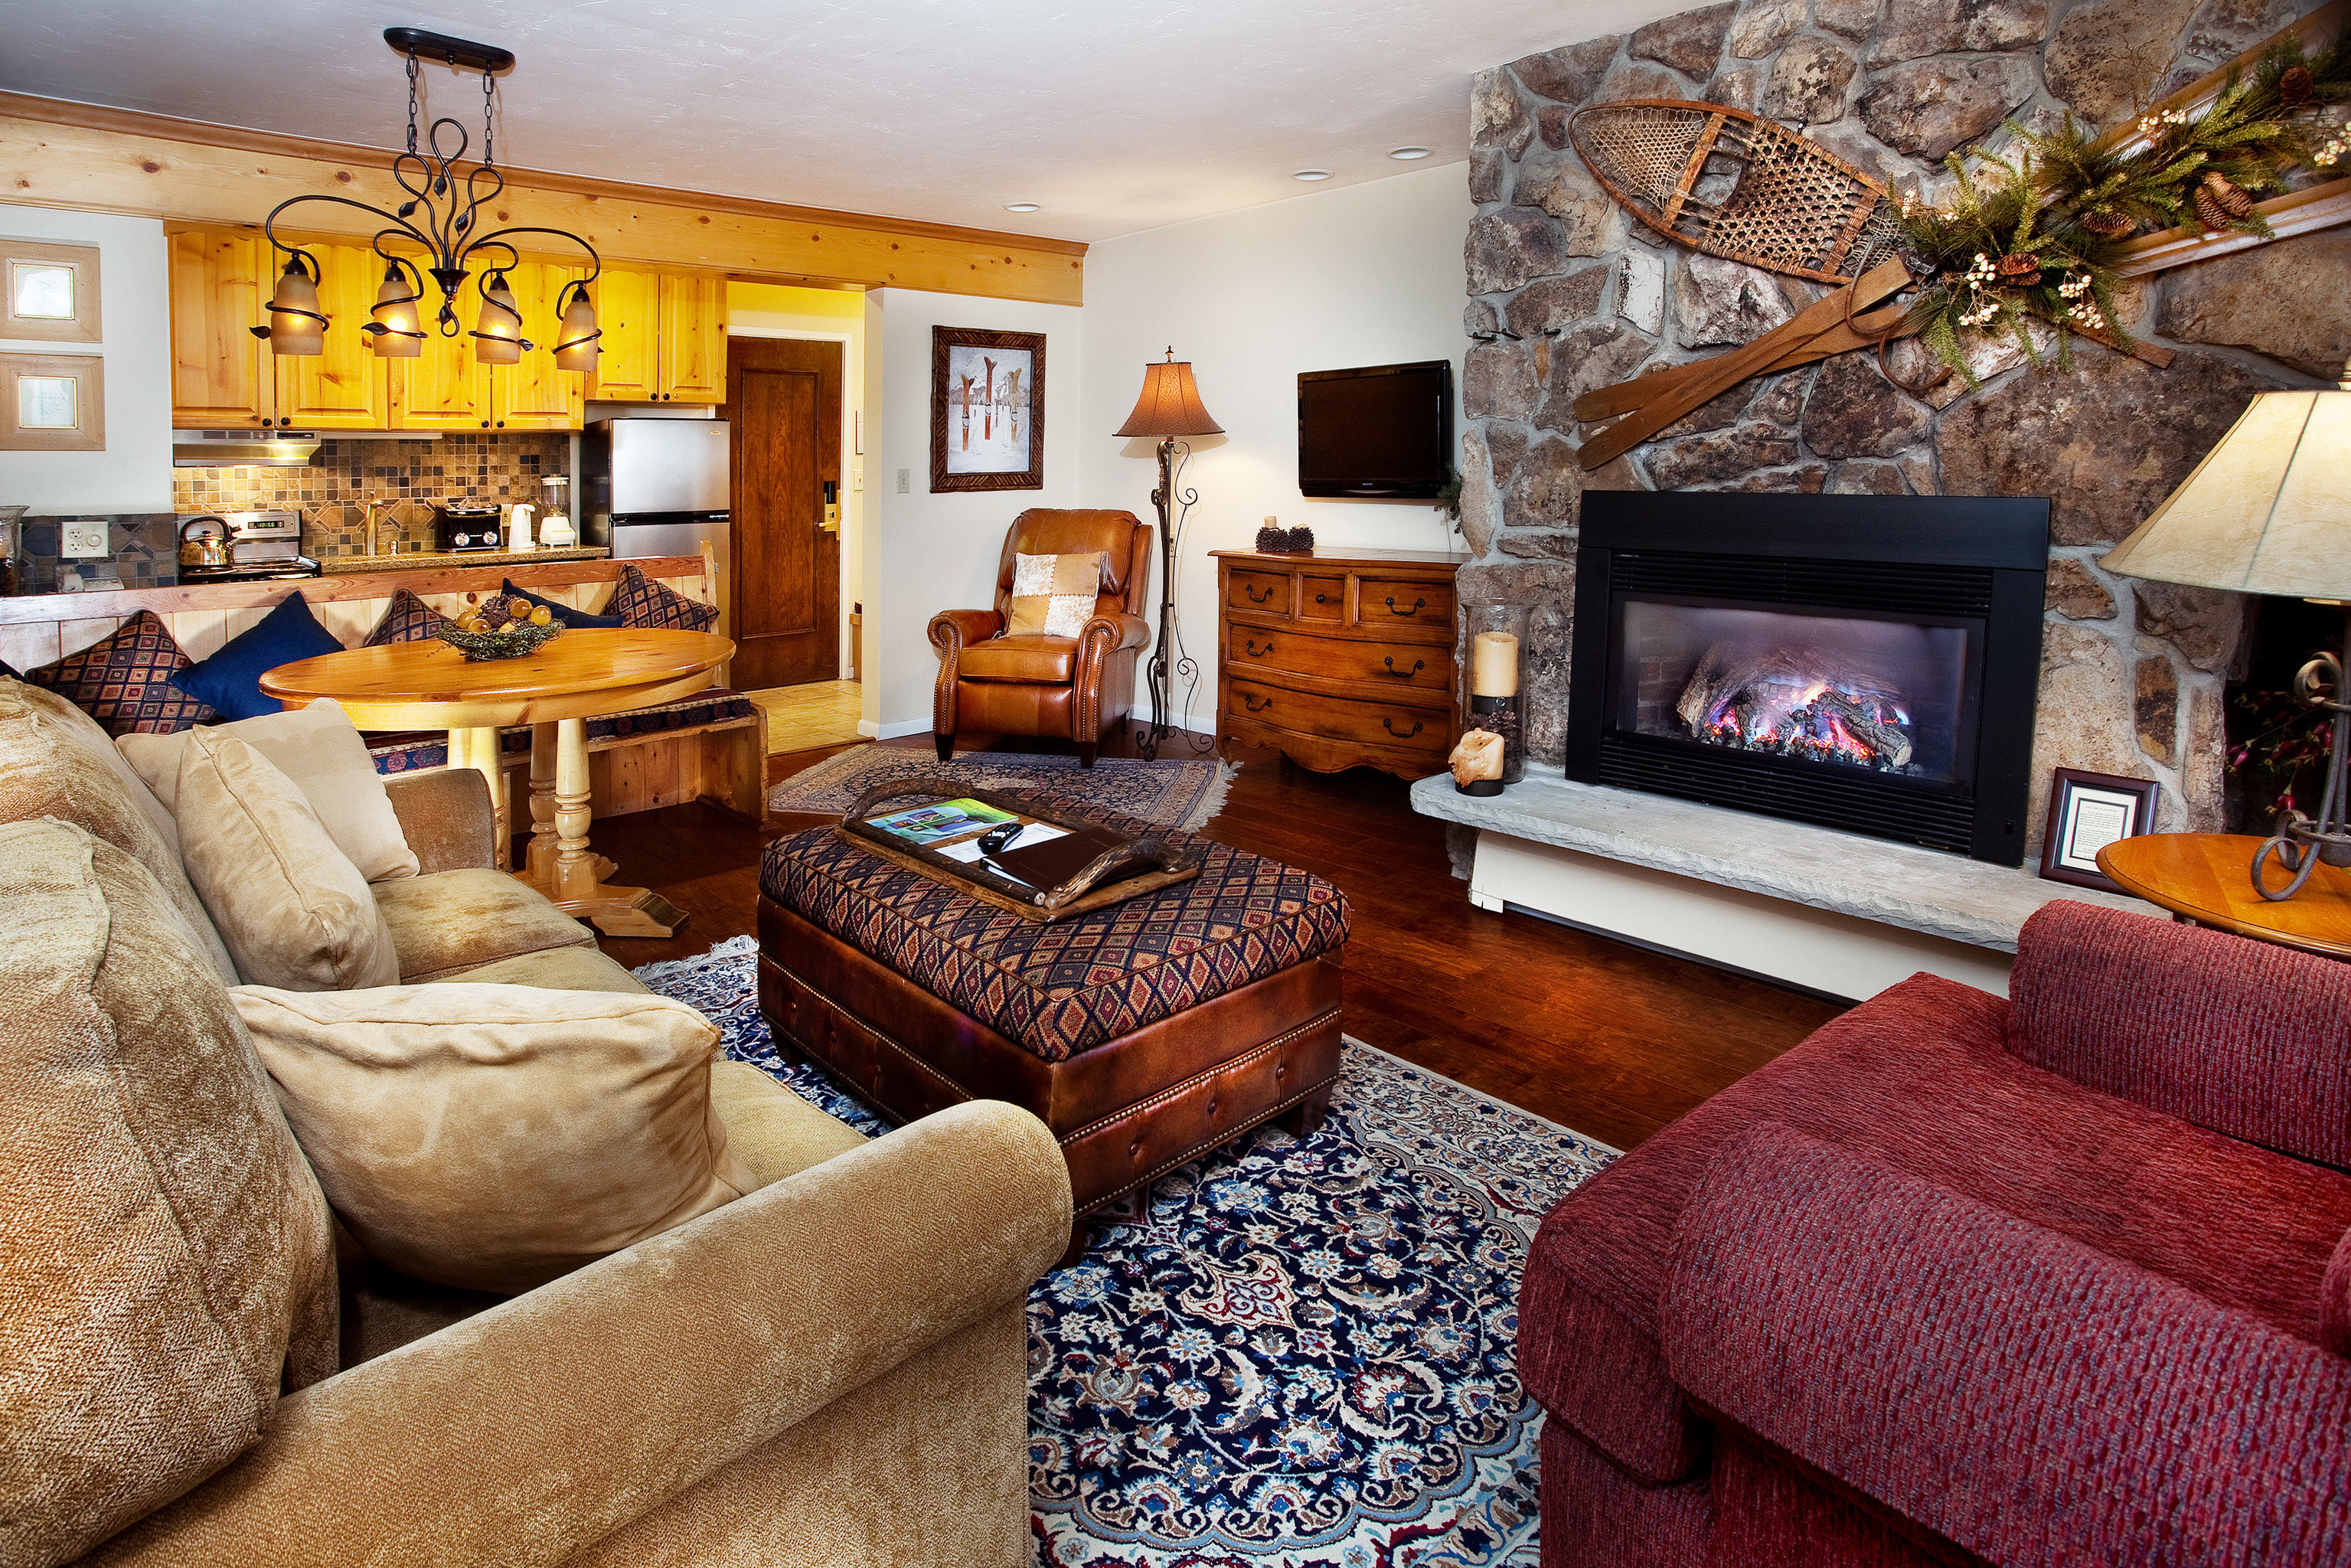 Family Fireplace Kitchen Lodge Luxury Rustic sofa living room property home cottage Suite Bedroom